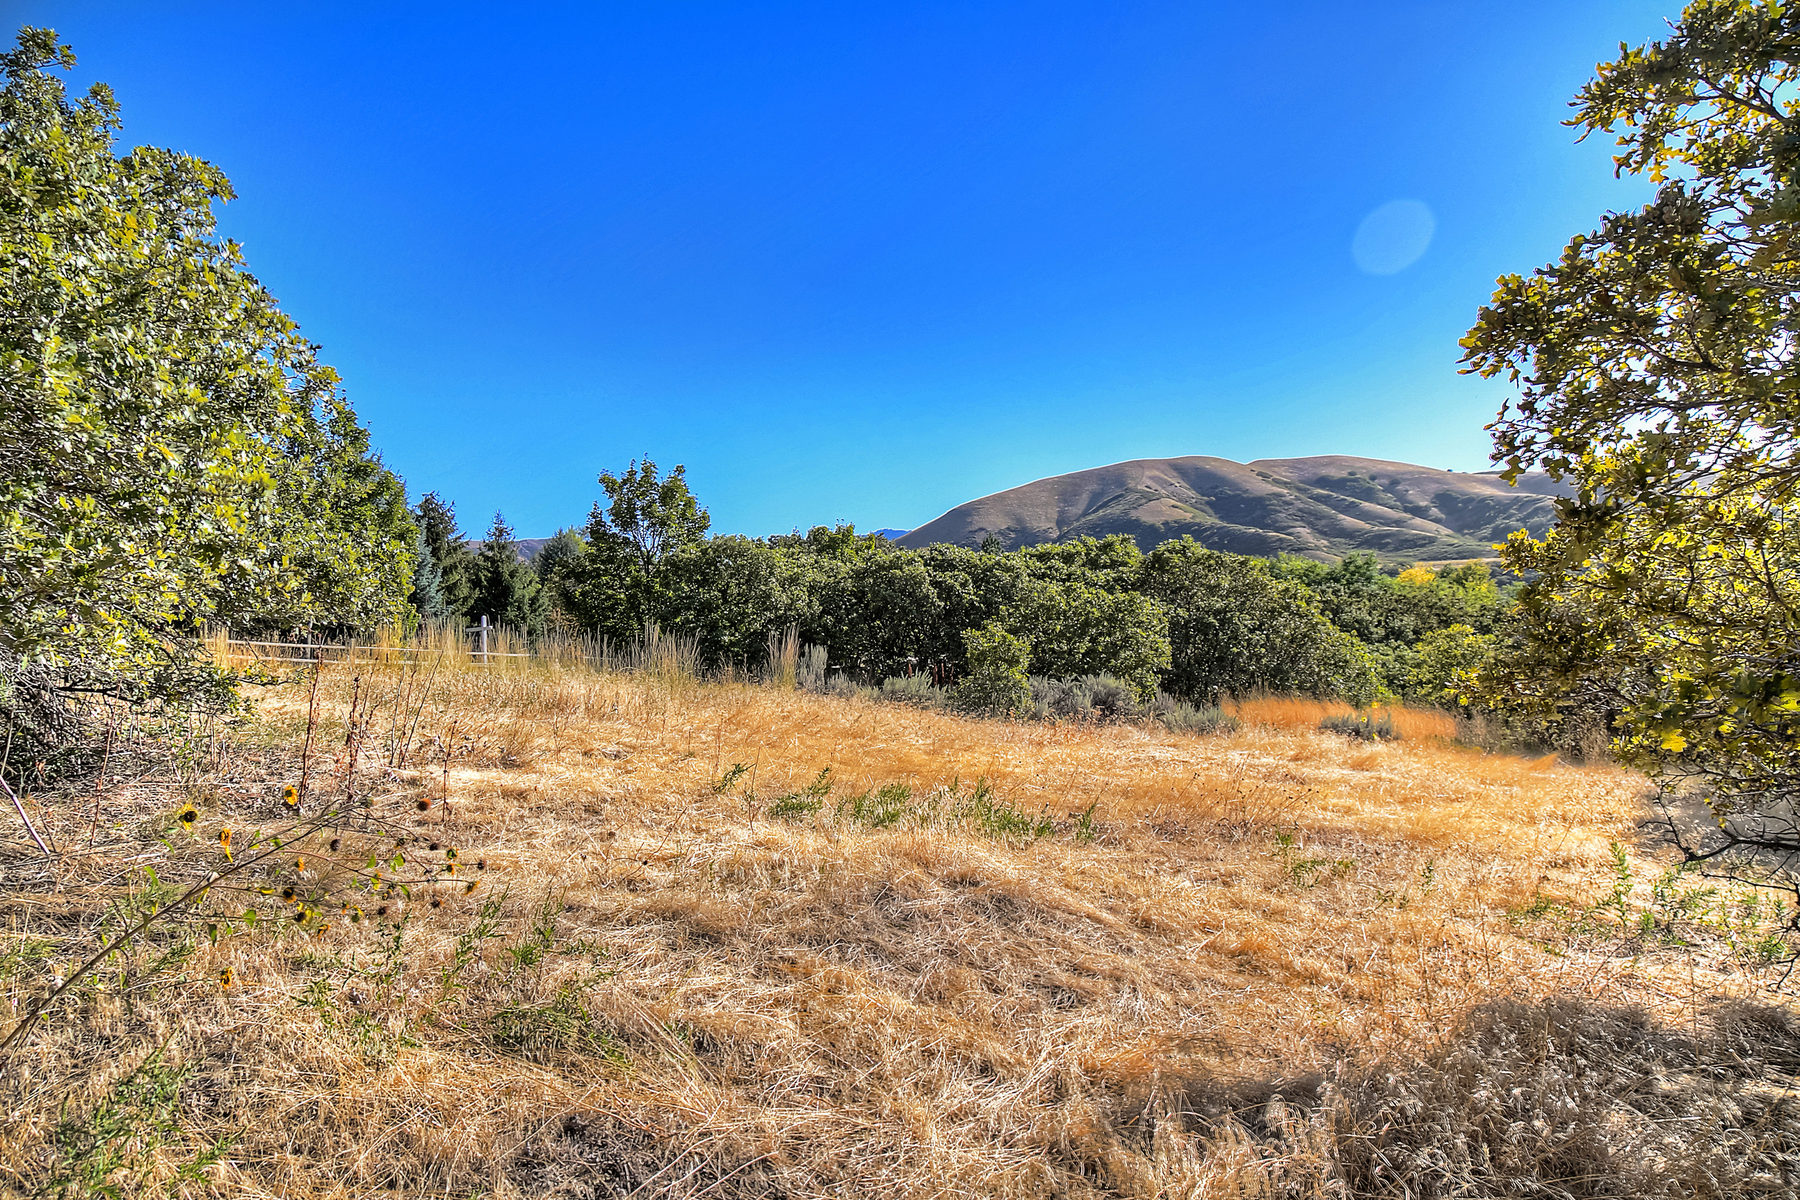 Terreno para Venda às Exclusive Lot with Breathtaking Views! 352 E Canyon Oaks Way Lot 212 Salt Lake City, Utah 84103 Estados Unidos